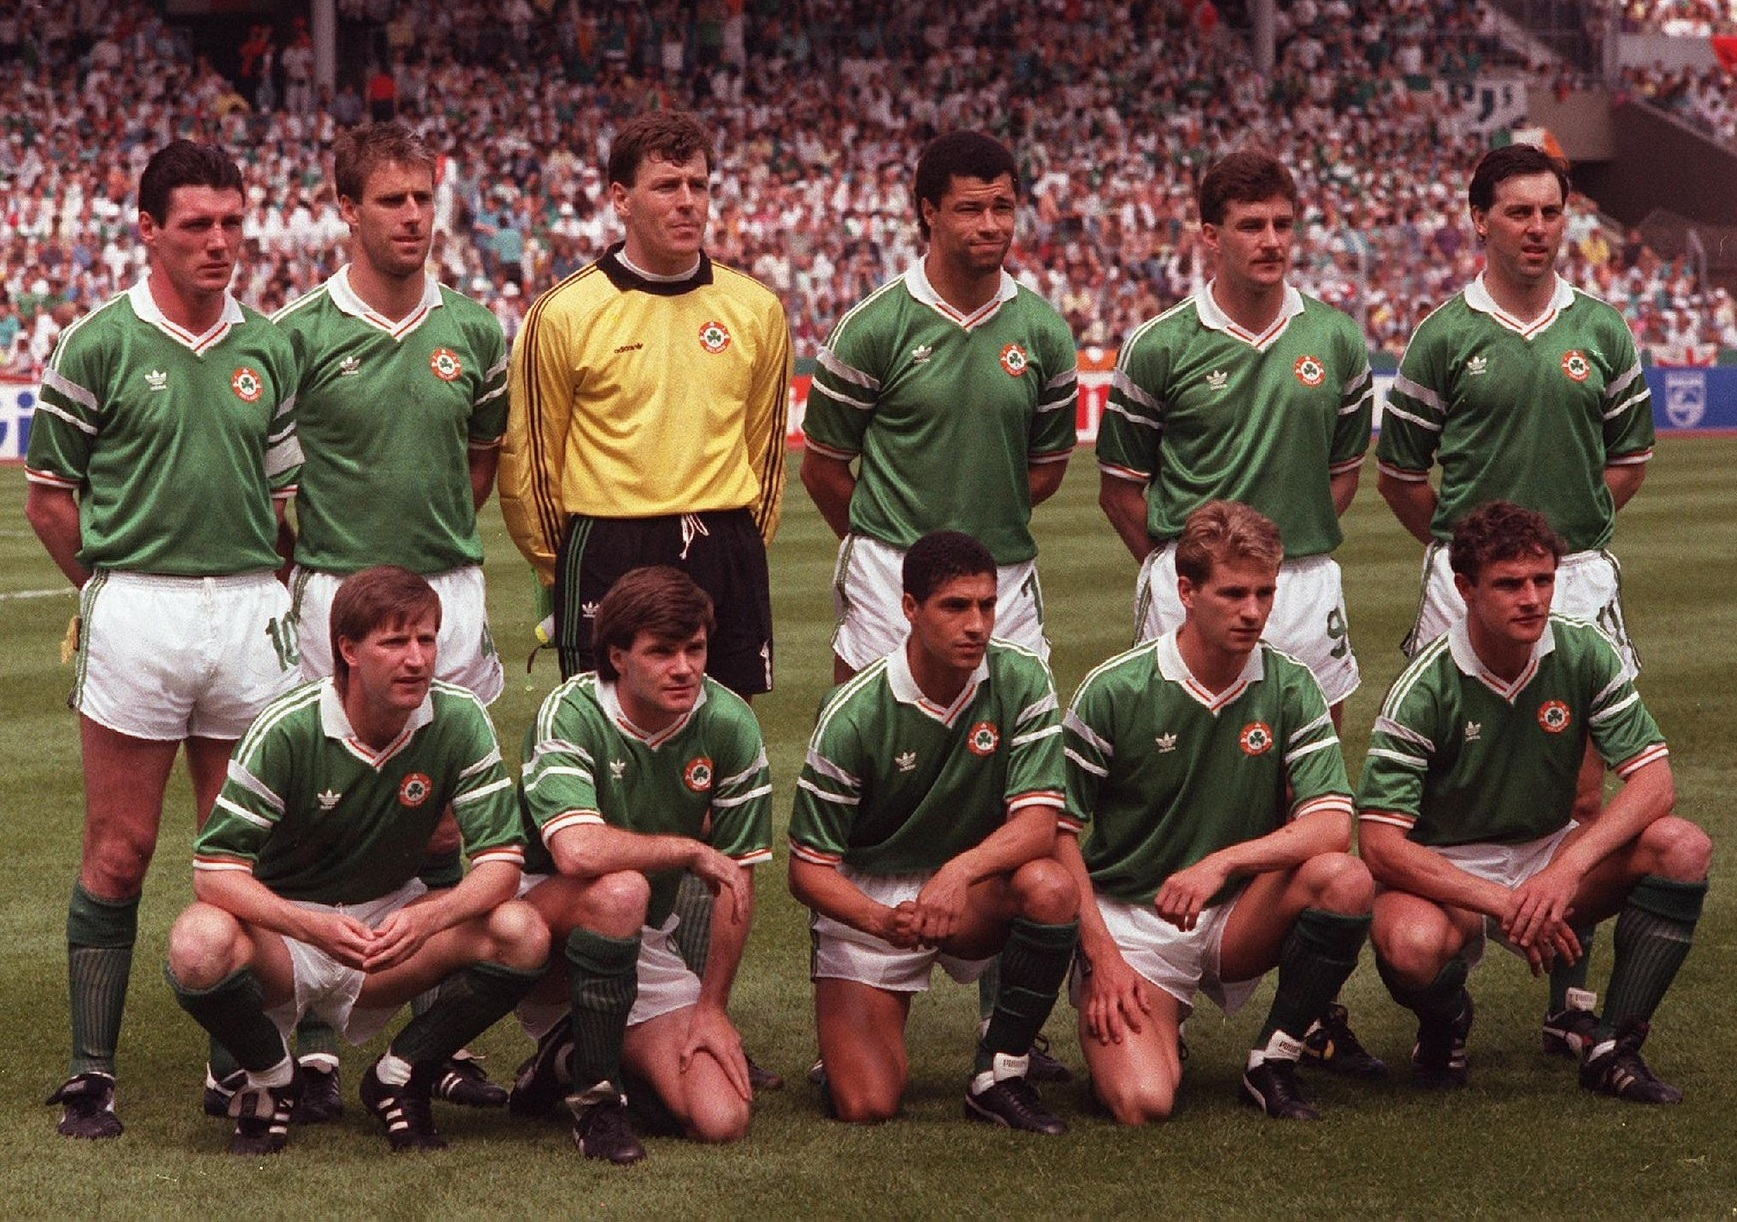 Ireland-1988-adidas-EURO-home-kit-green-white-green-line-up.jpg